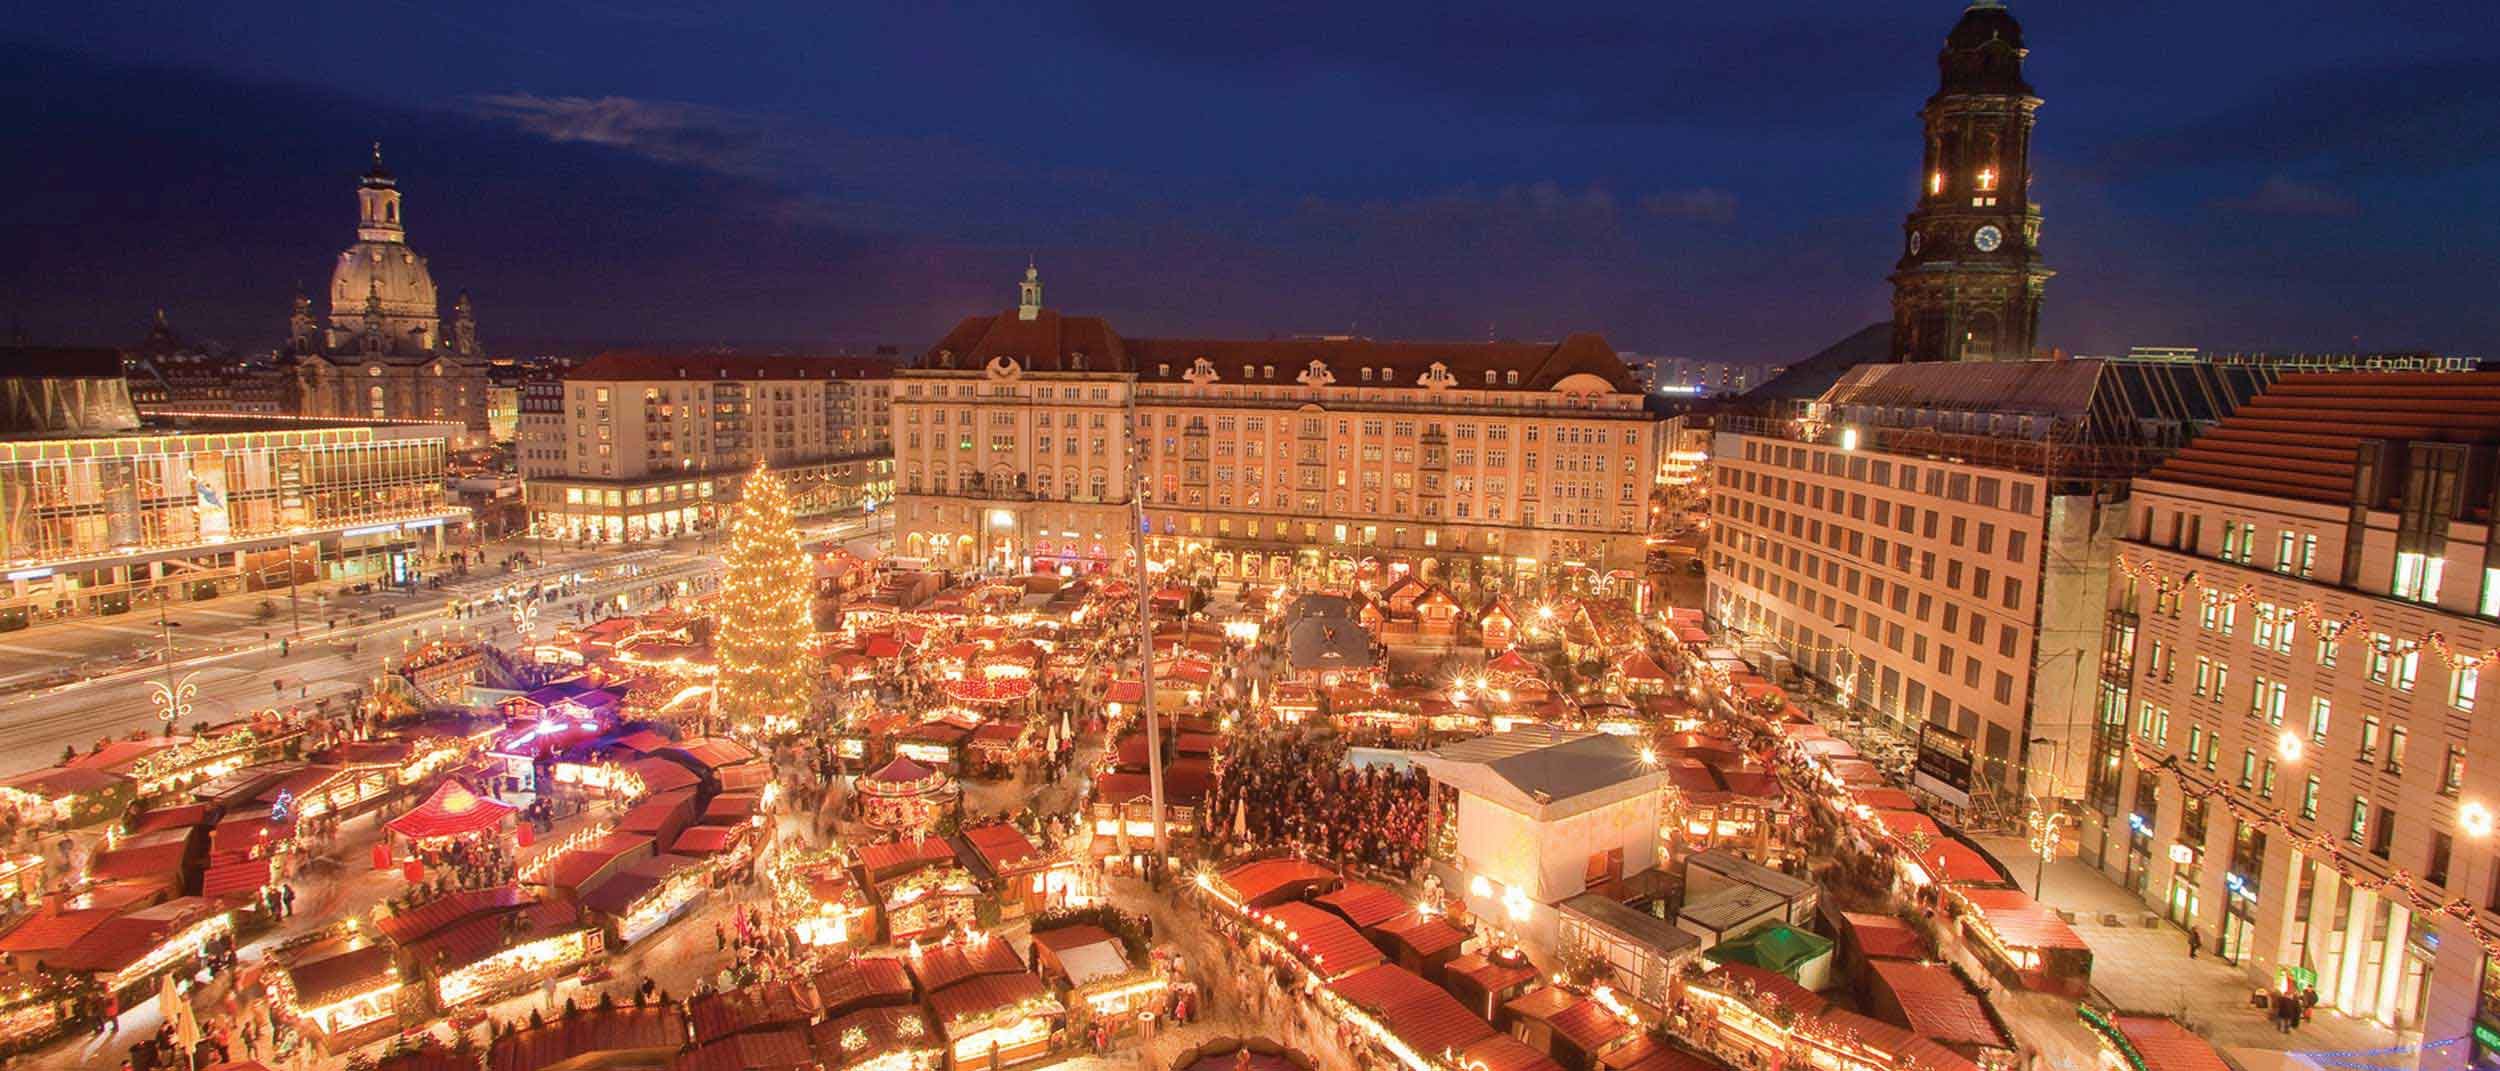 there is no place like germany austria to become part of the lights and celebration leading up to christmas in a traditional way